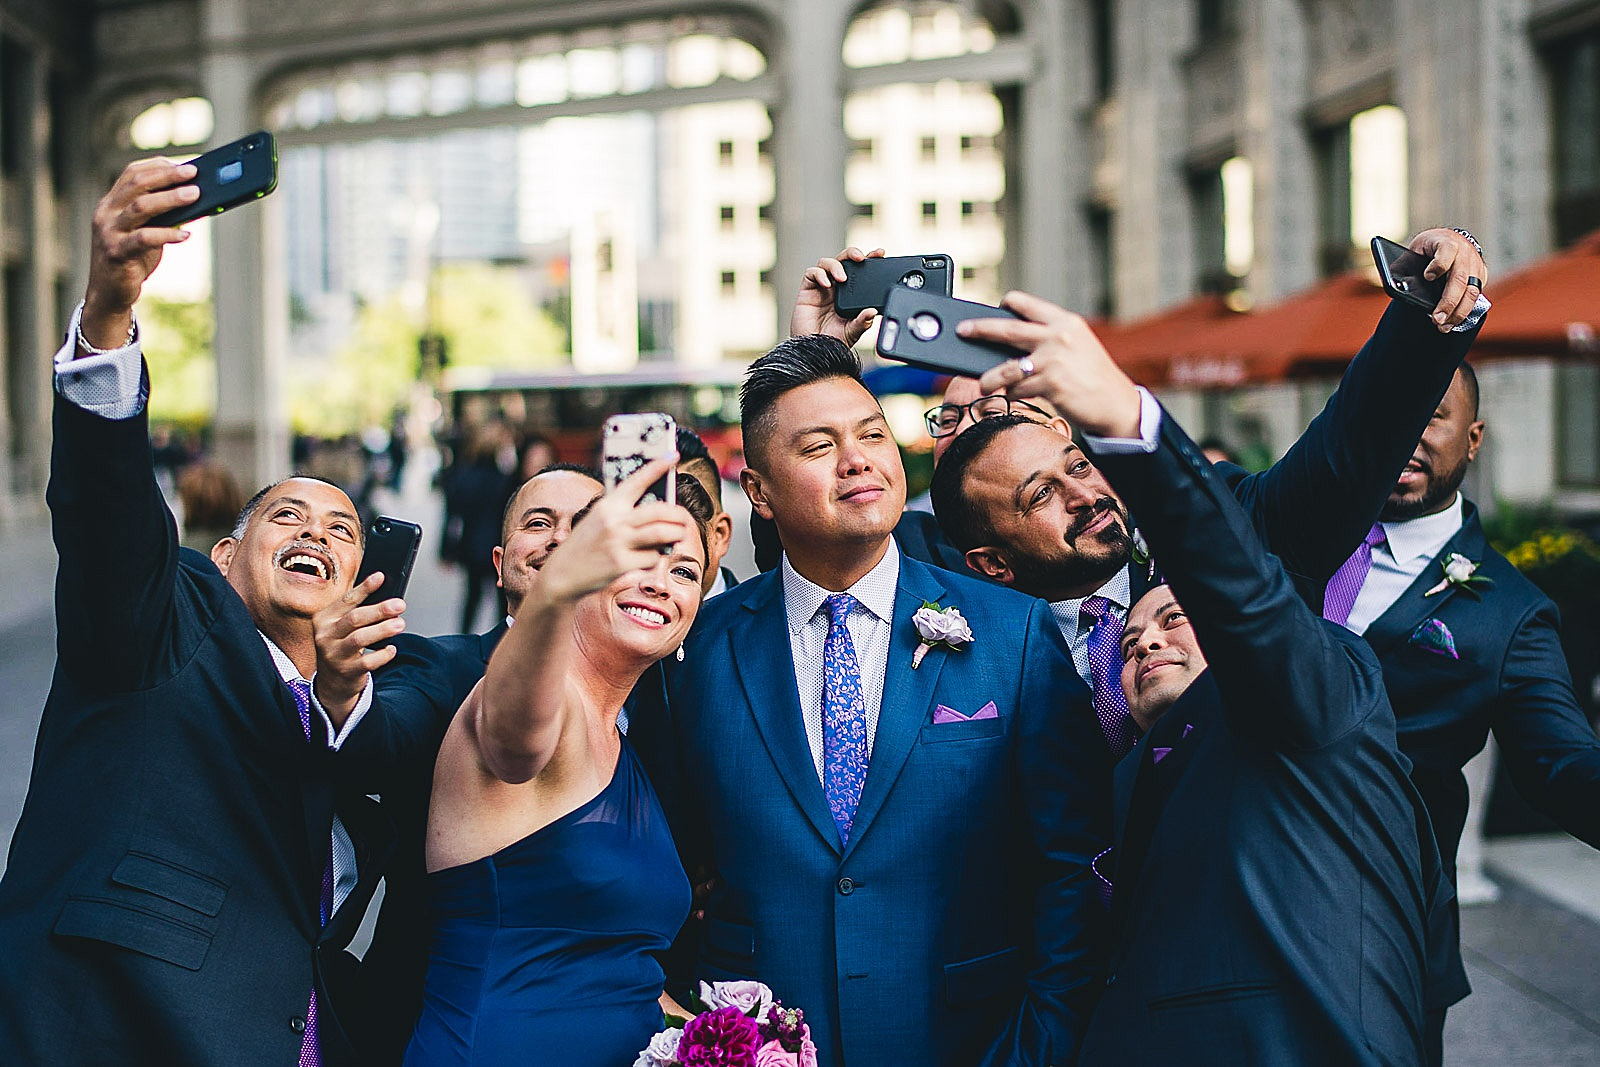 25 fun wedding photographers in chicago - LondonHouse Wedding Photos // Mari + Kevin